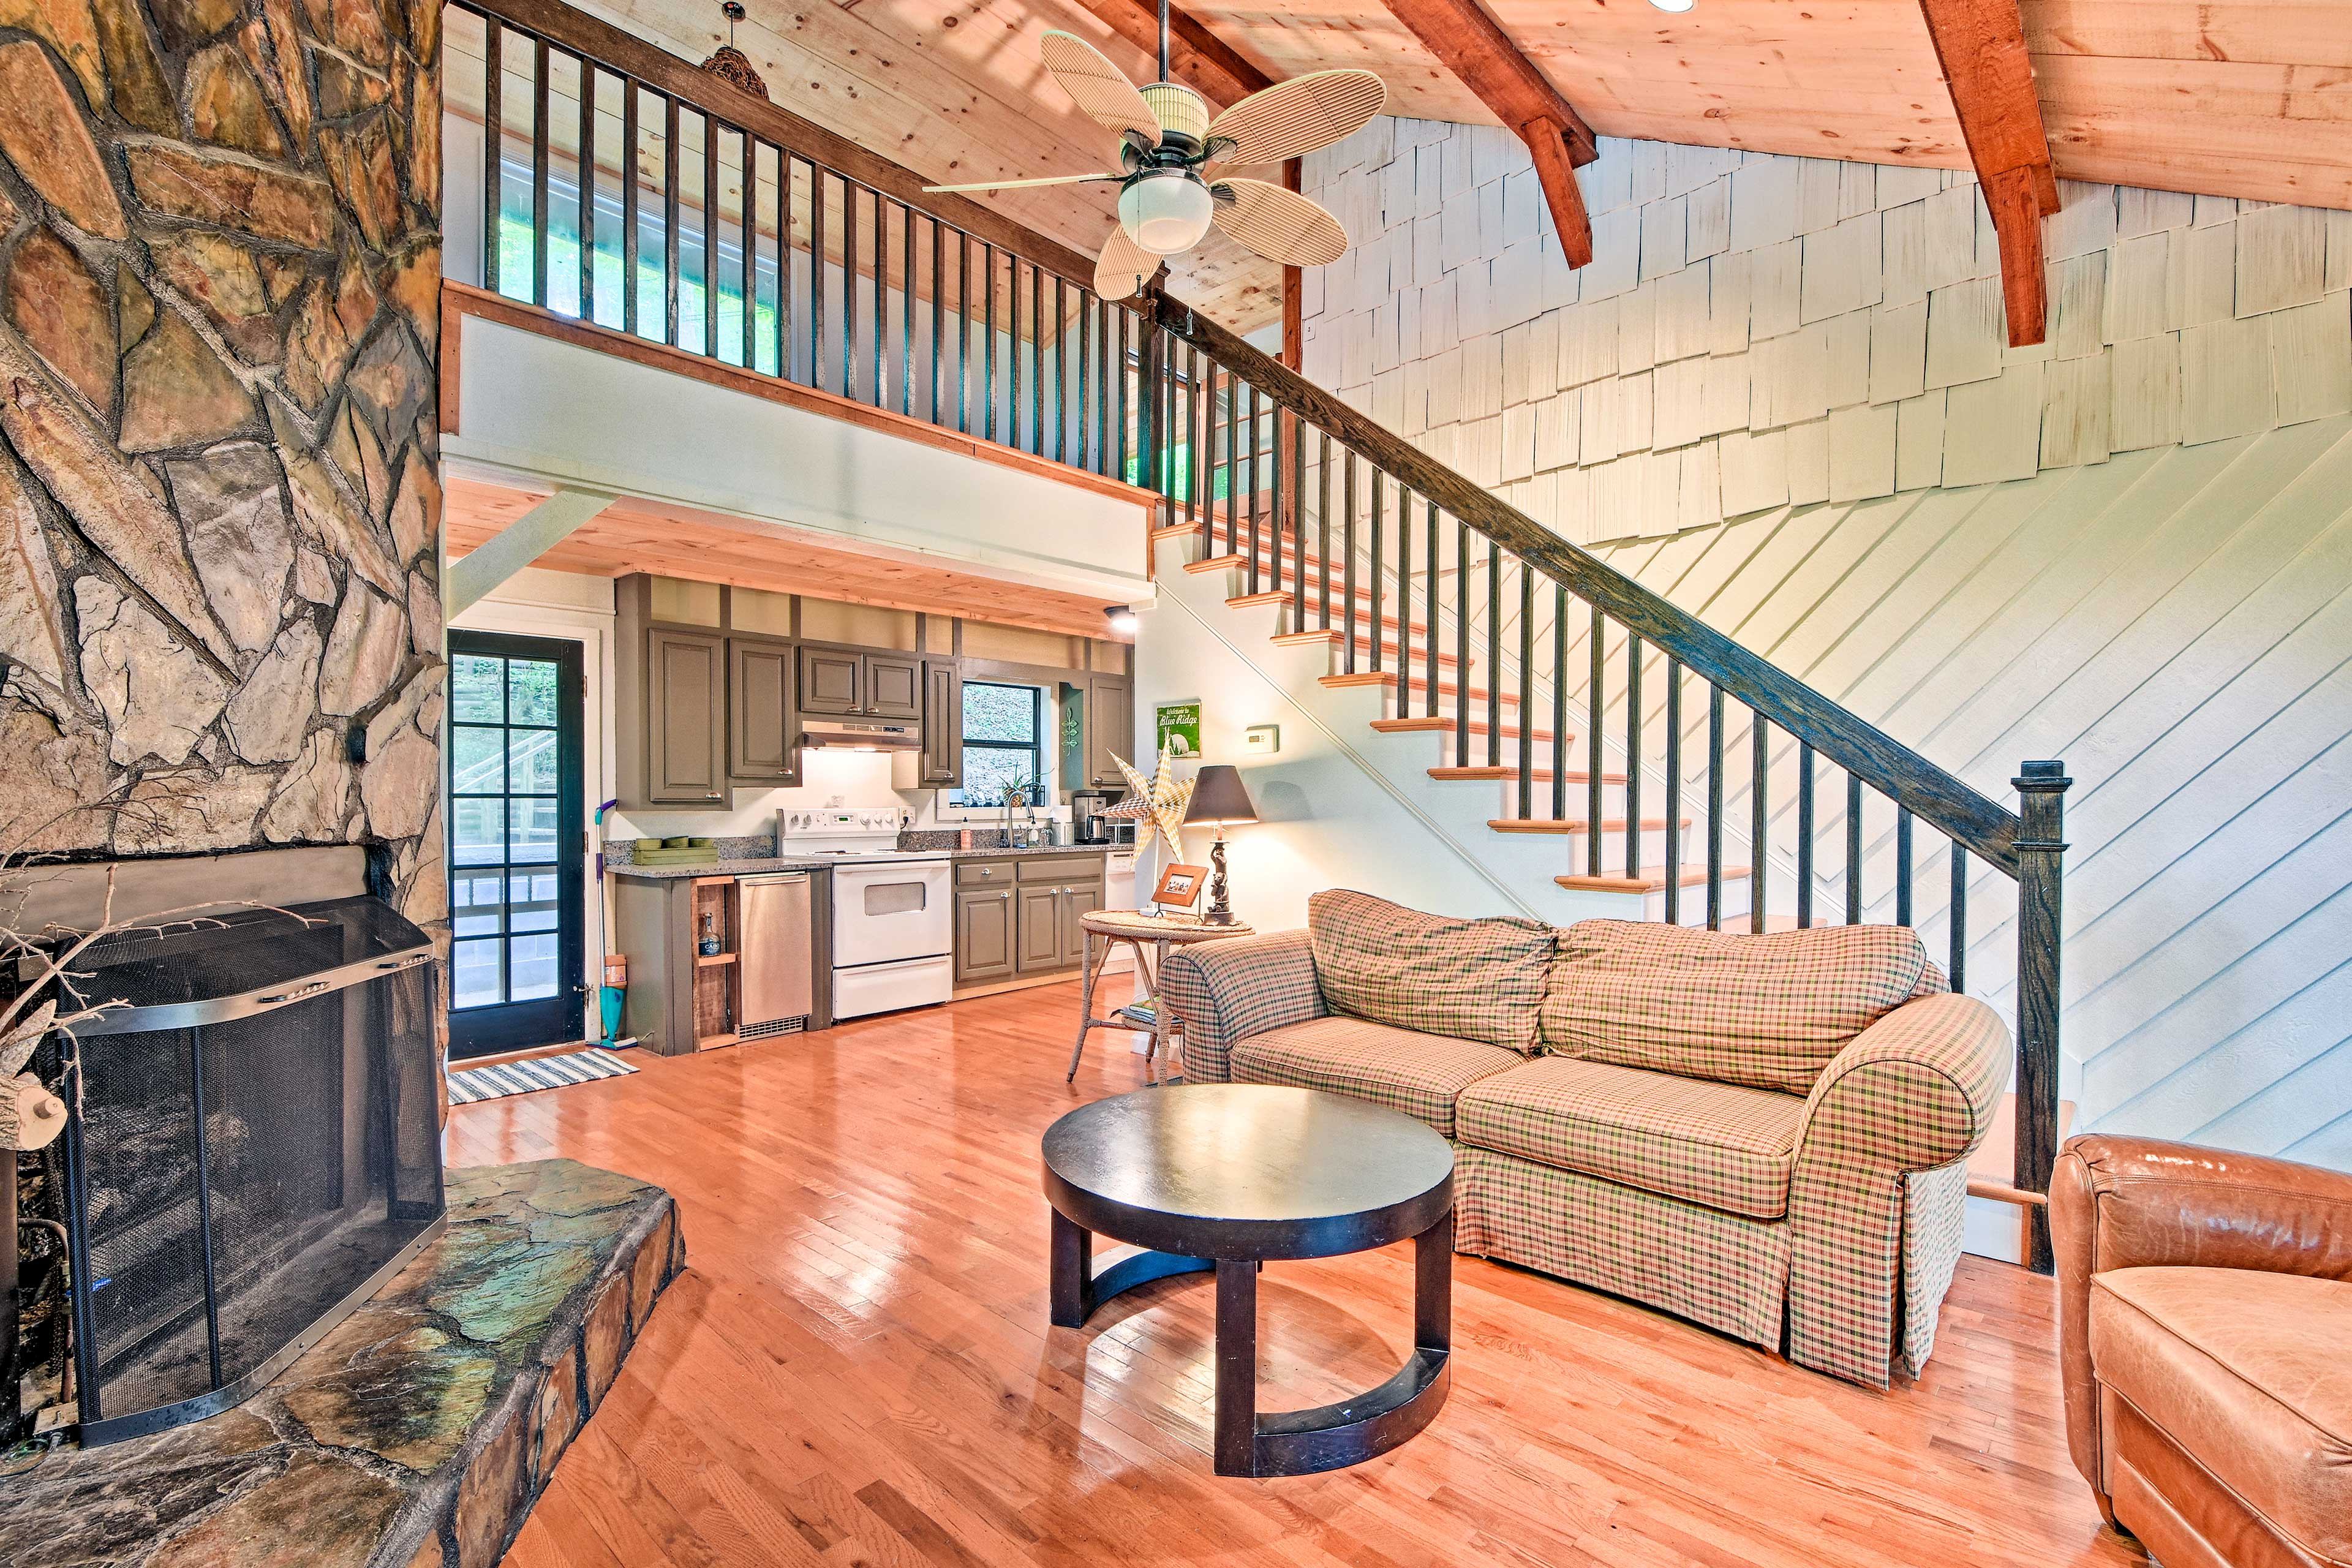 The space has high, exposed-beam ceilings and an overhead loft.